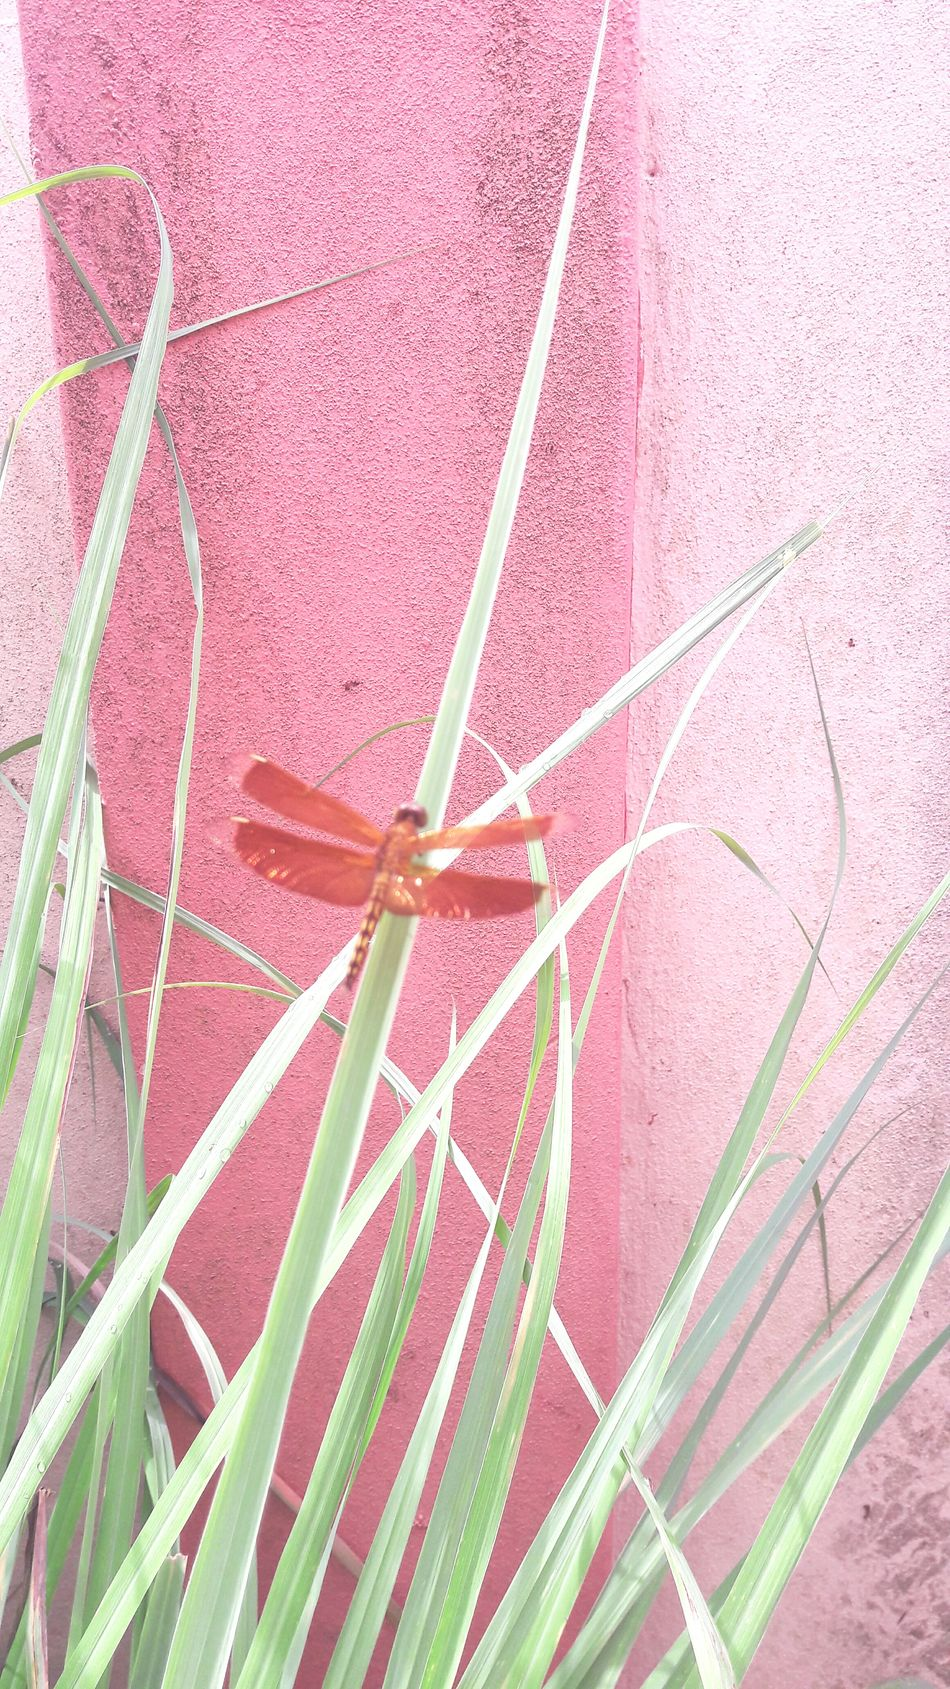 Memoirs. Pink Color Insect Dragonfly Green Memoir Bugslife Flying Wings High Angle View Outdoors Red No People Close-up Day EyeEmNewHere Long Goodbye Rain Drops On Leaves Clean Water EyeEm Best Shots Pastels